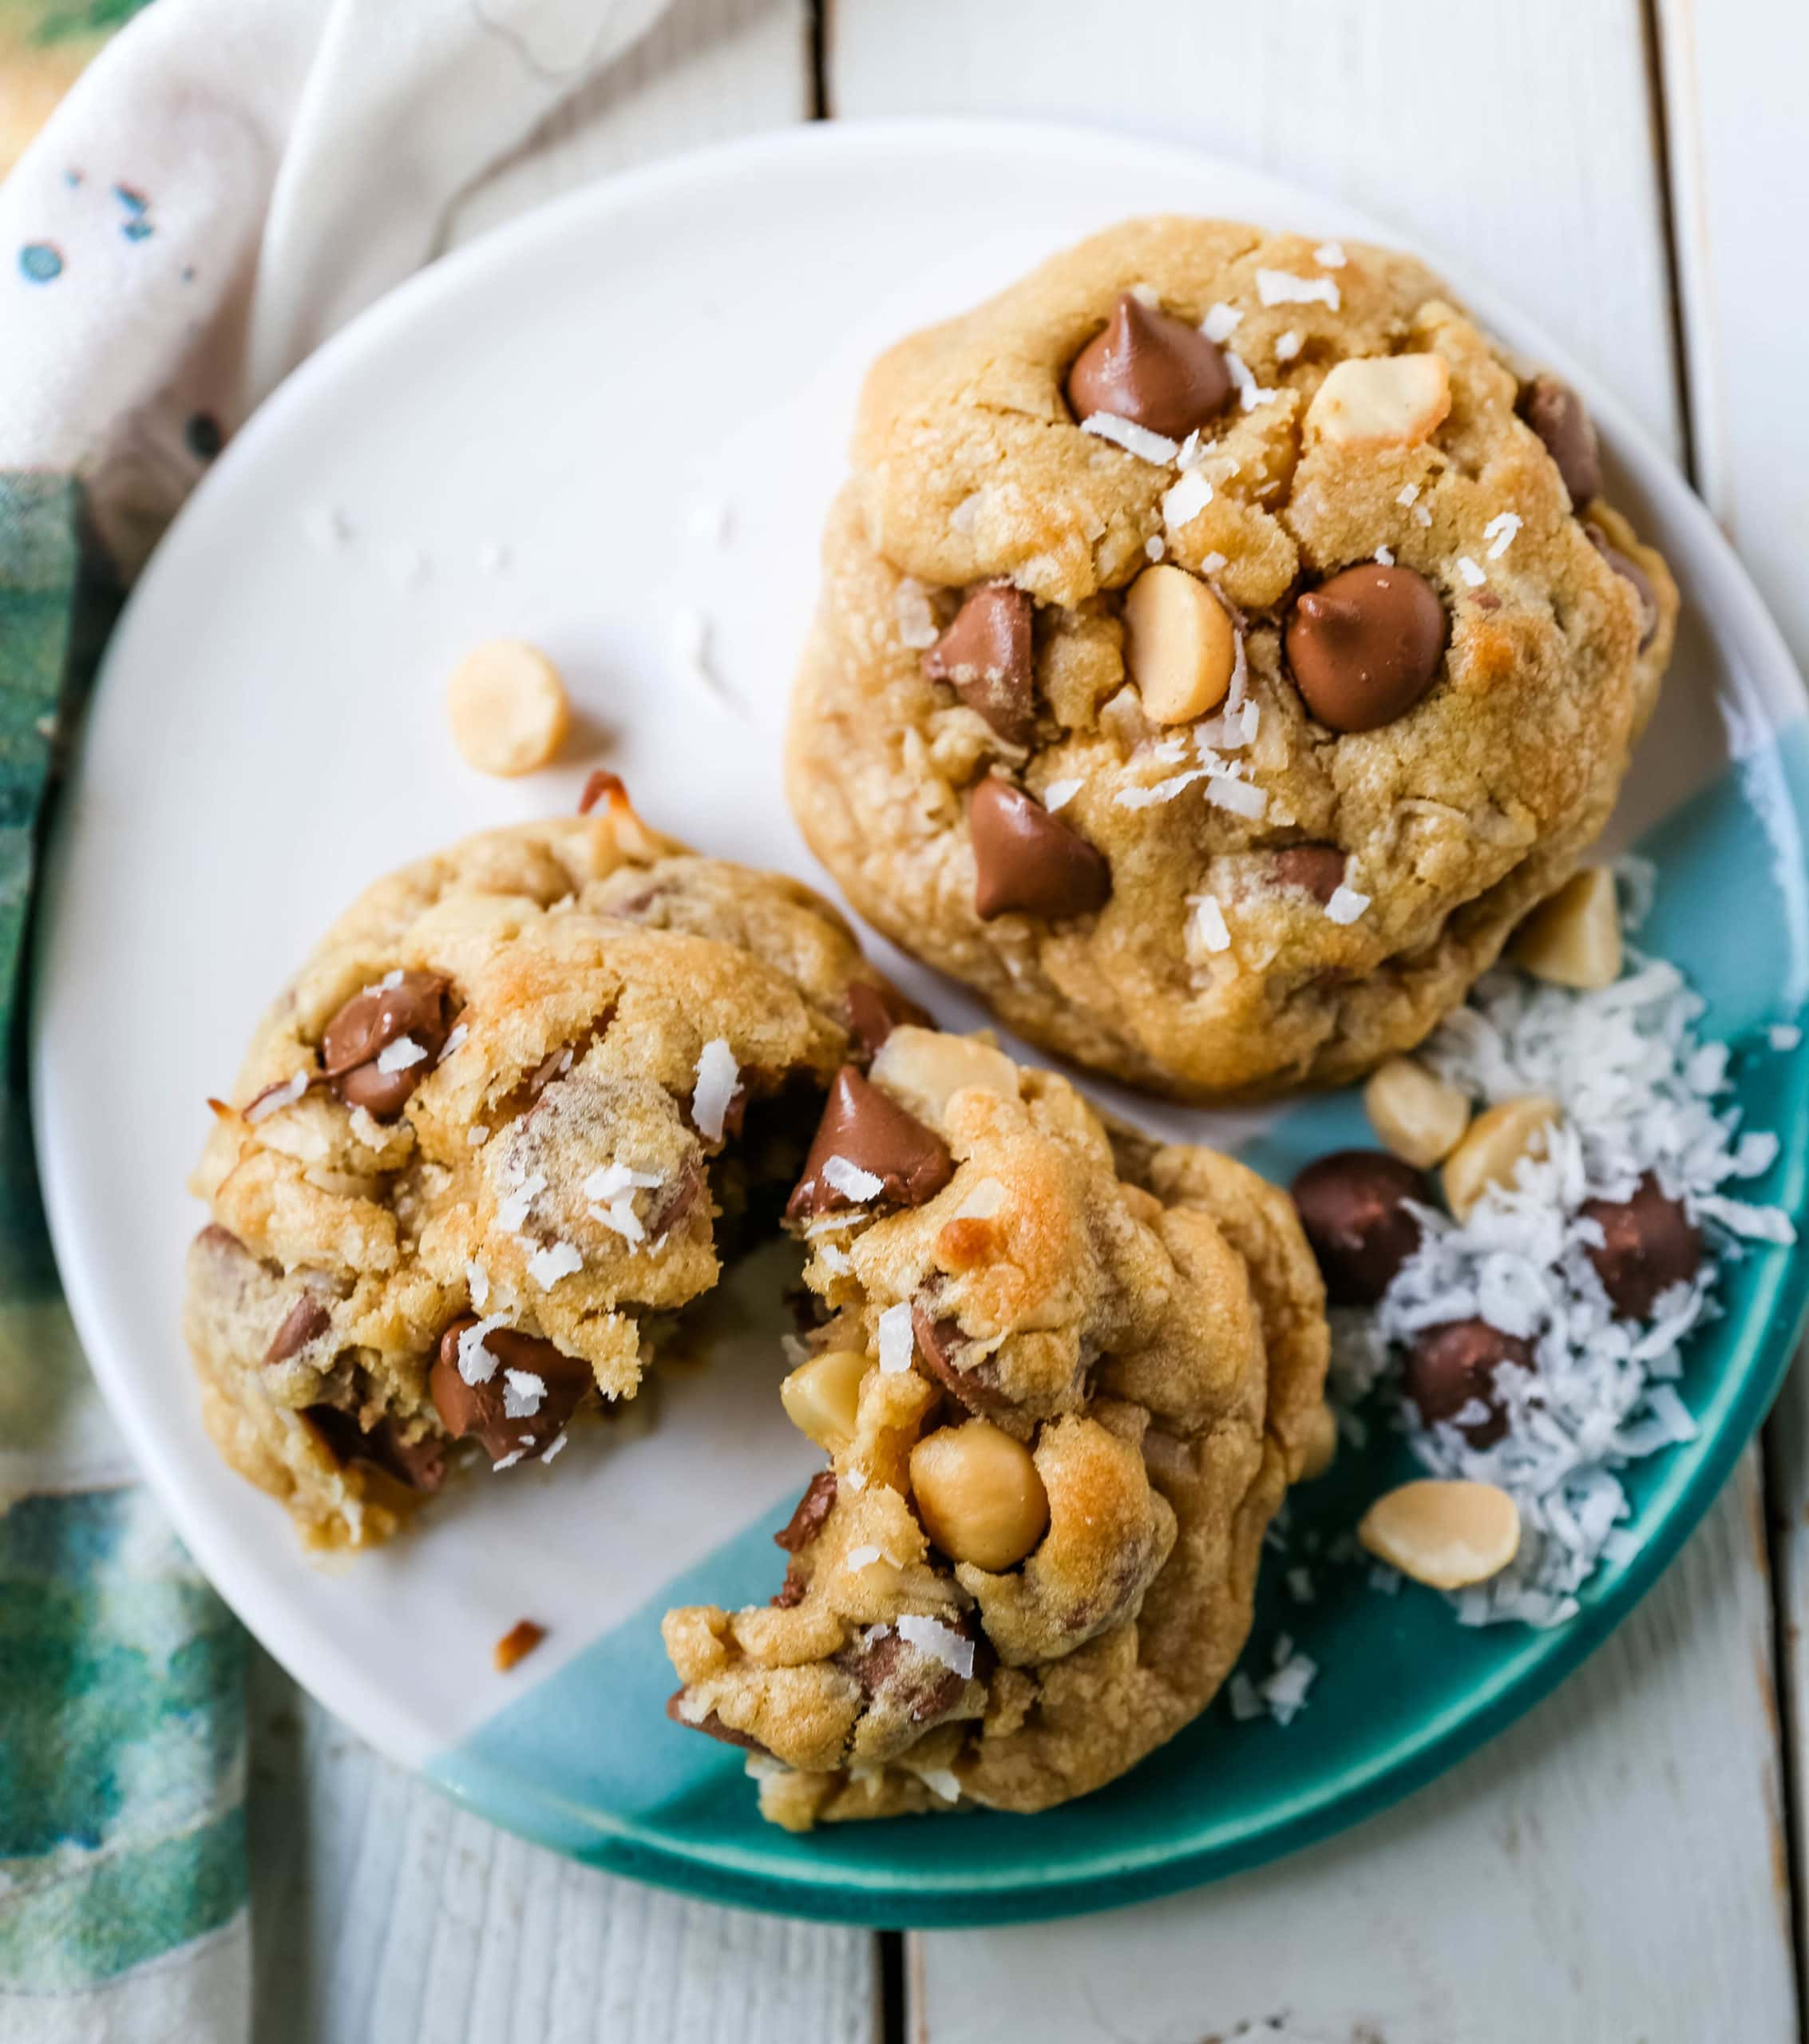 Milk Chocolate Chip Macadamia Nut Coconut Cookies Thick soft and chewy bakery-style milk chocolate chip macadamia nut coconut cookies are an Island favorite!  www.modernhoney.com #cookies #chocolatechipmacadamianut